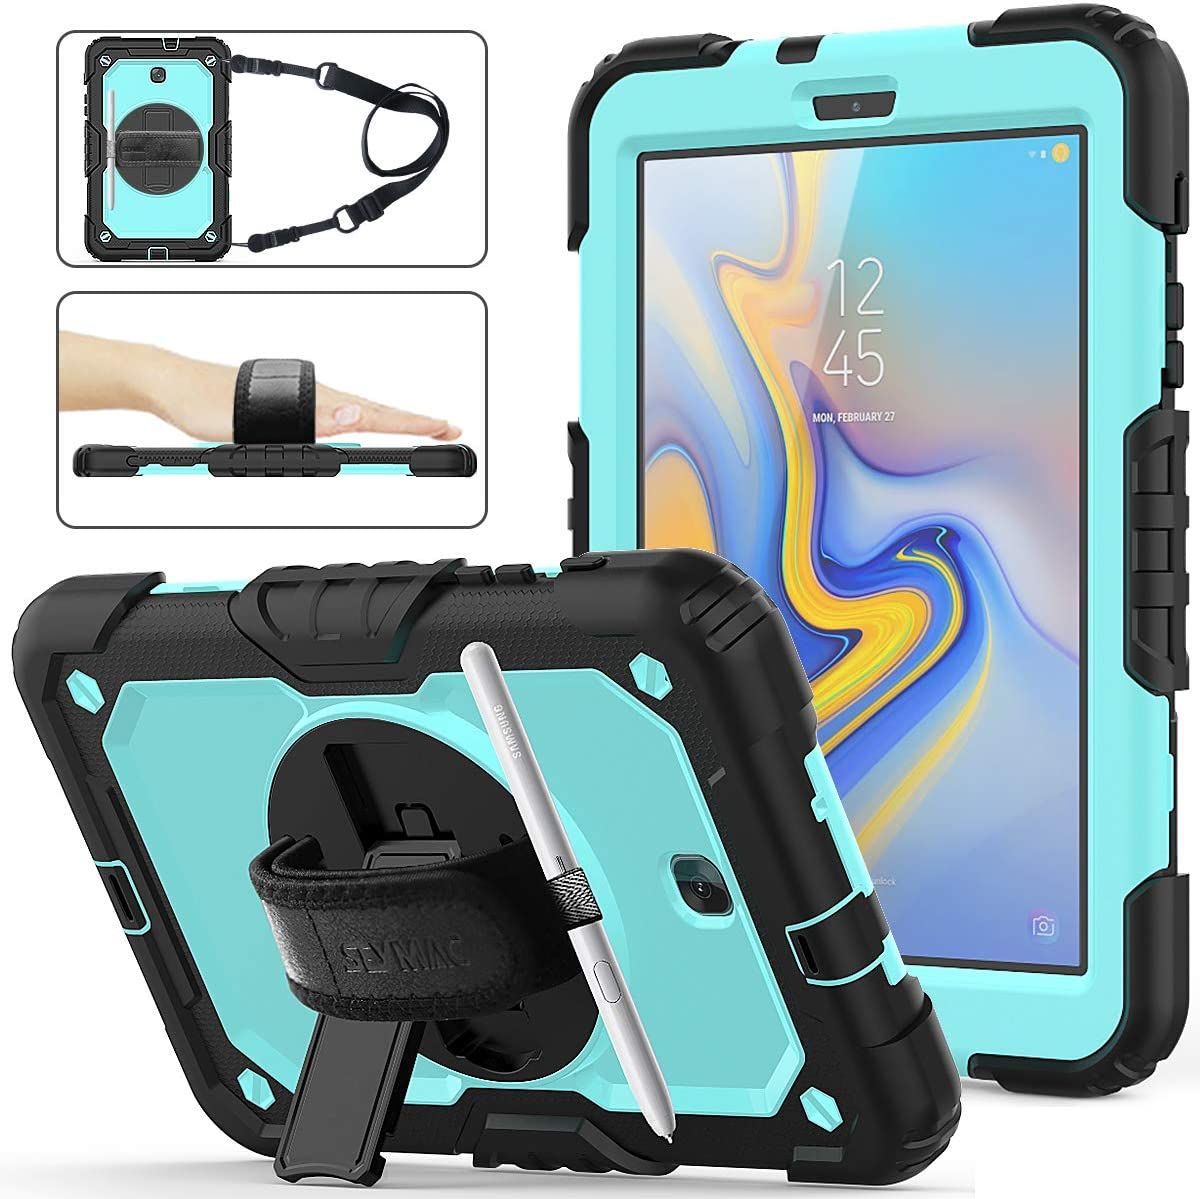 Galaxy Tab A 8.0 Case [ONLY FIT SM-T387 ], [Full-body] Drop Proof Case with 360 Rotating [Hand Strap] Stand [Screen protector] Pencil Holder for Samsung Tab A 8.0 Model SM-T387 (2018) - Skyblue+Black